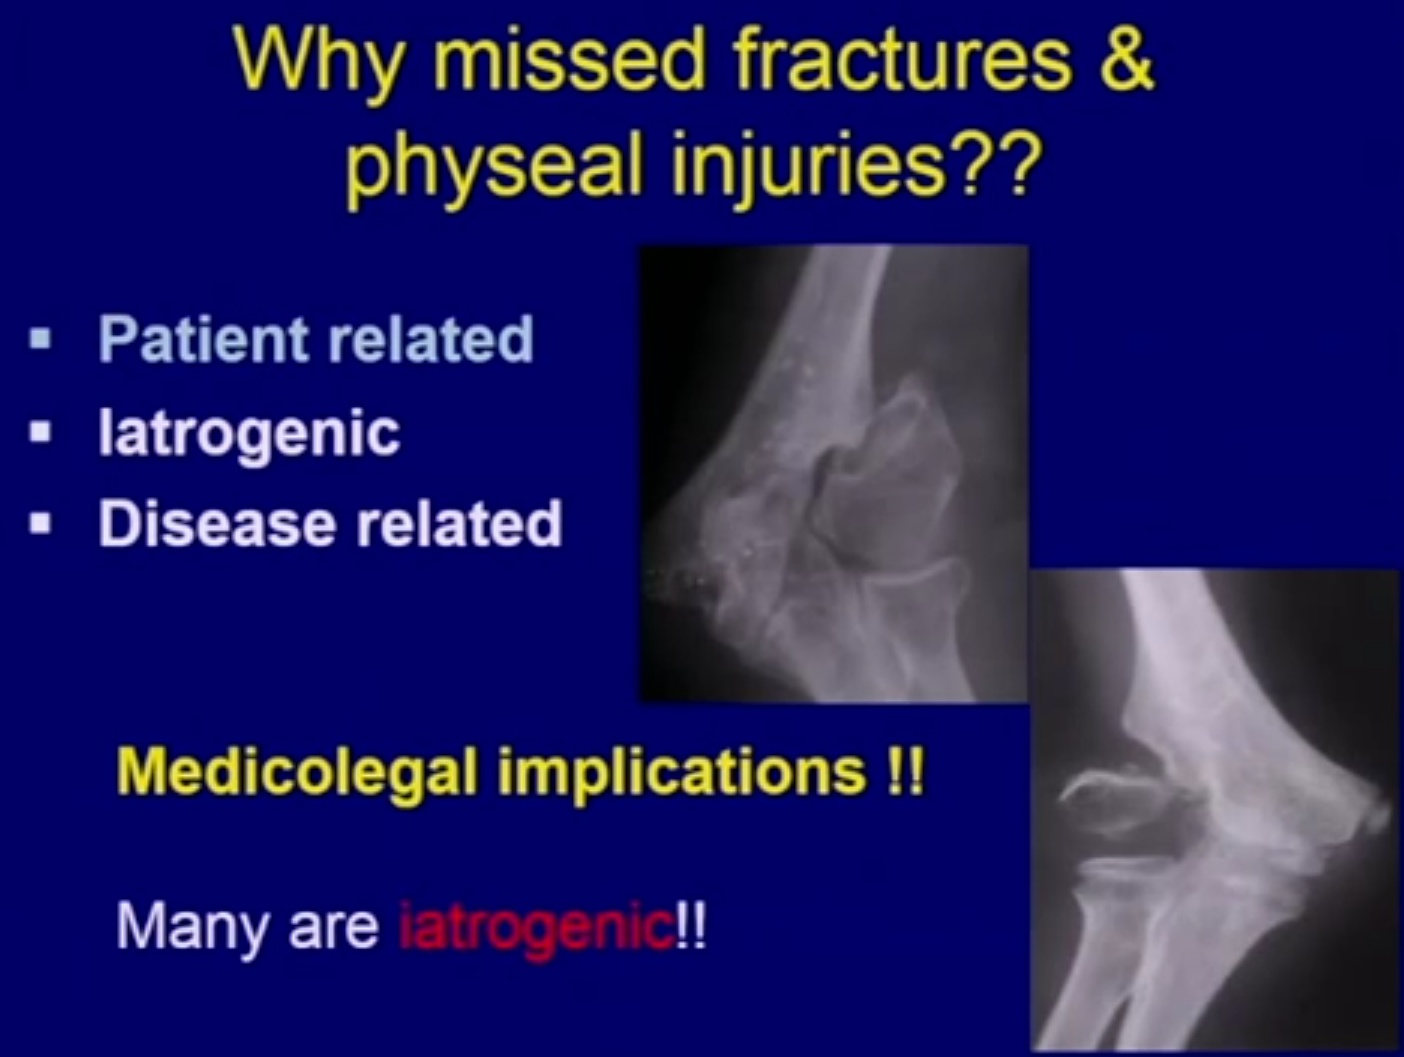 Missed fractures